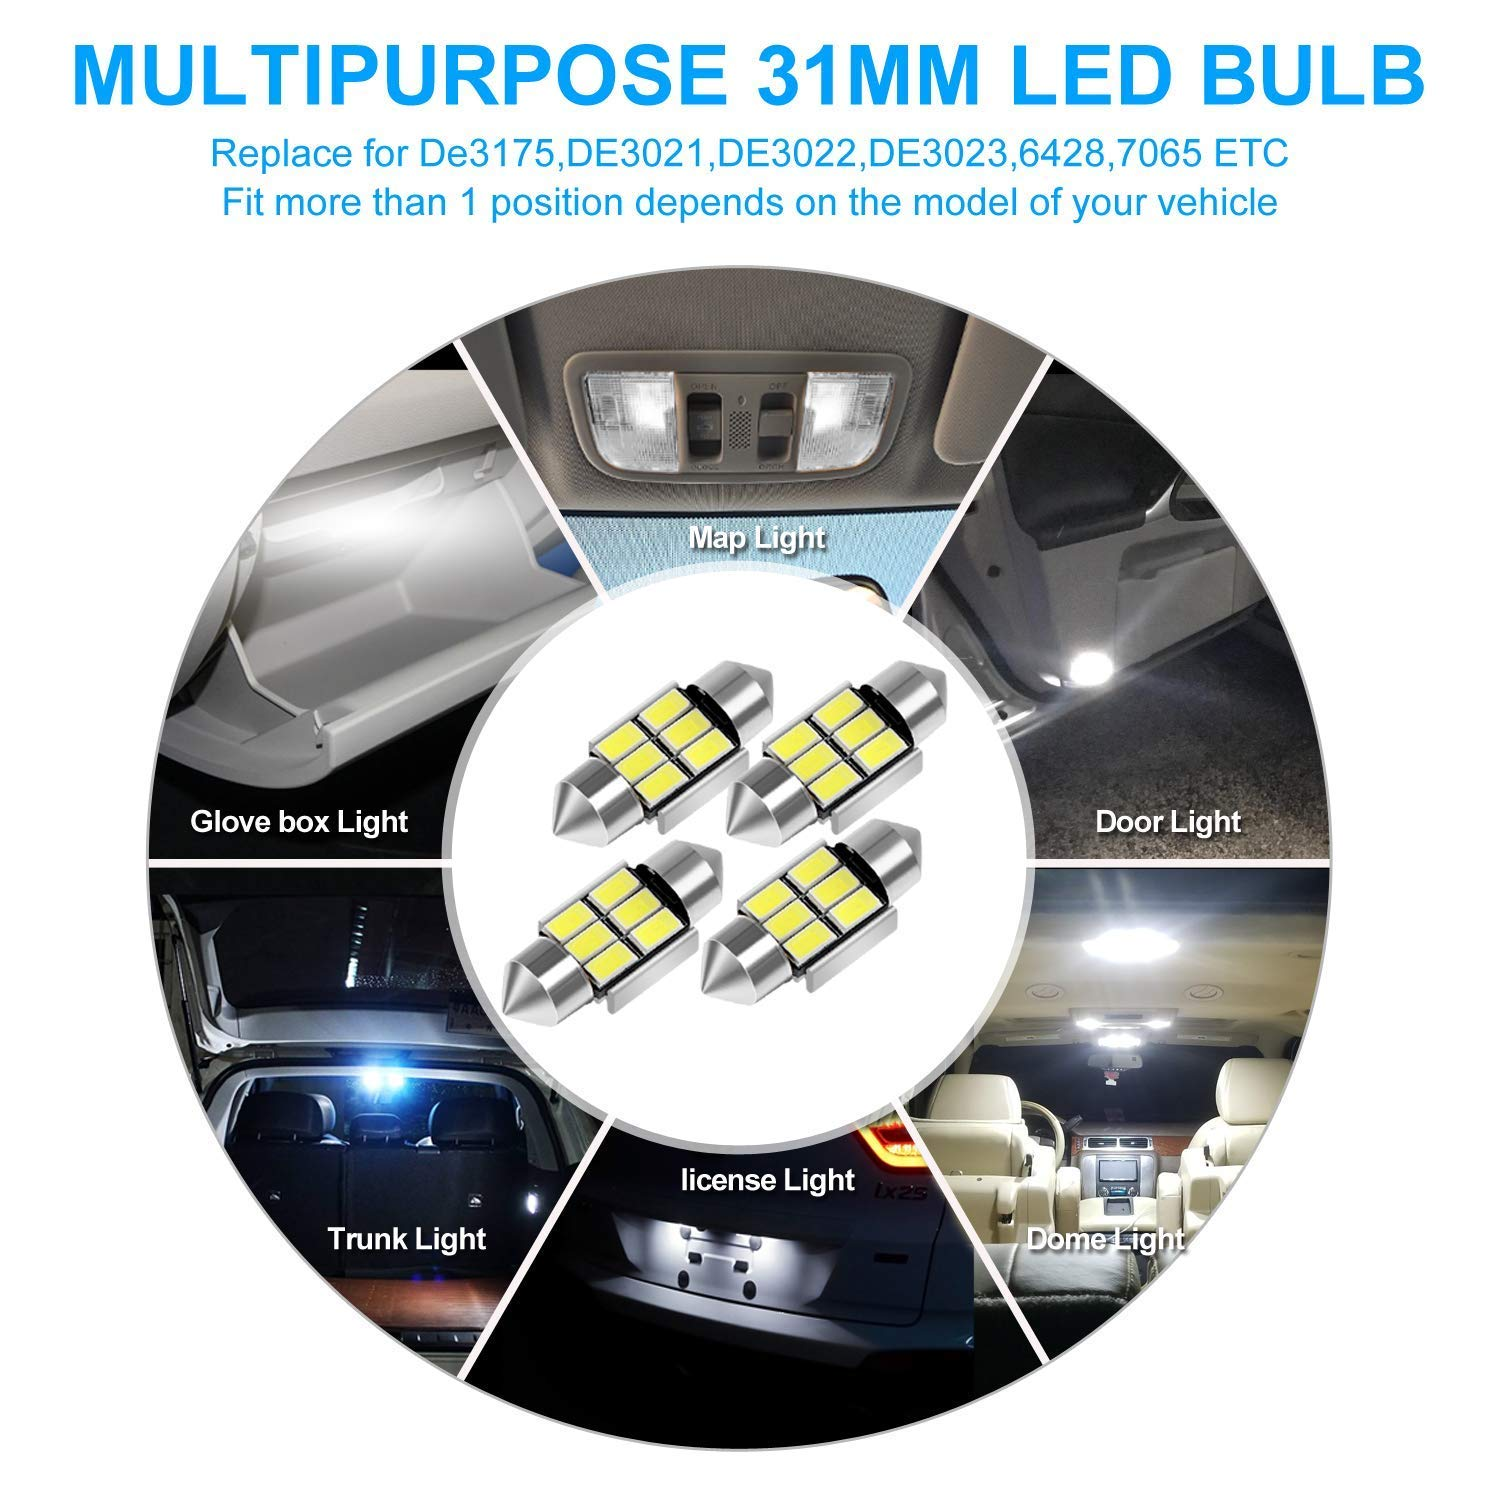 SUMOZO Festoon C5W Led Bulbs 36mm Canbus Error Free 6000K White Light 6-SMD 5730 for Car Interior Dome License Plate Door Lights Pack of 4 36mm